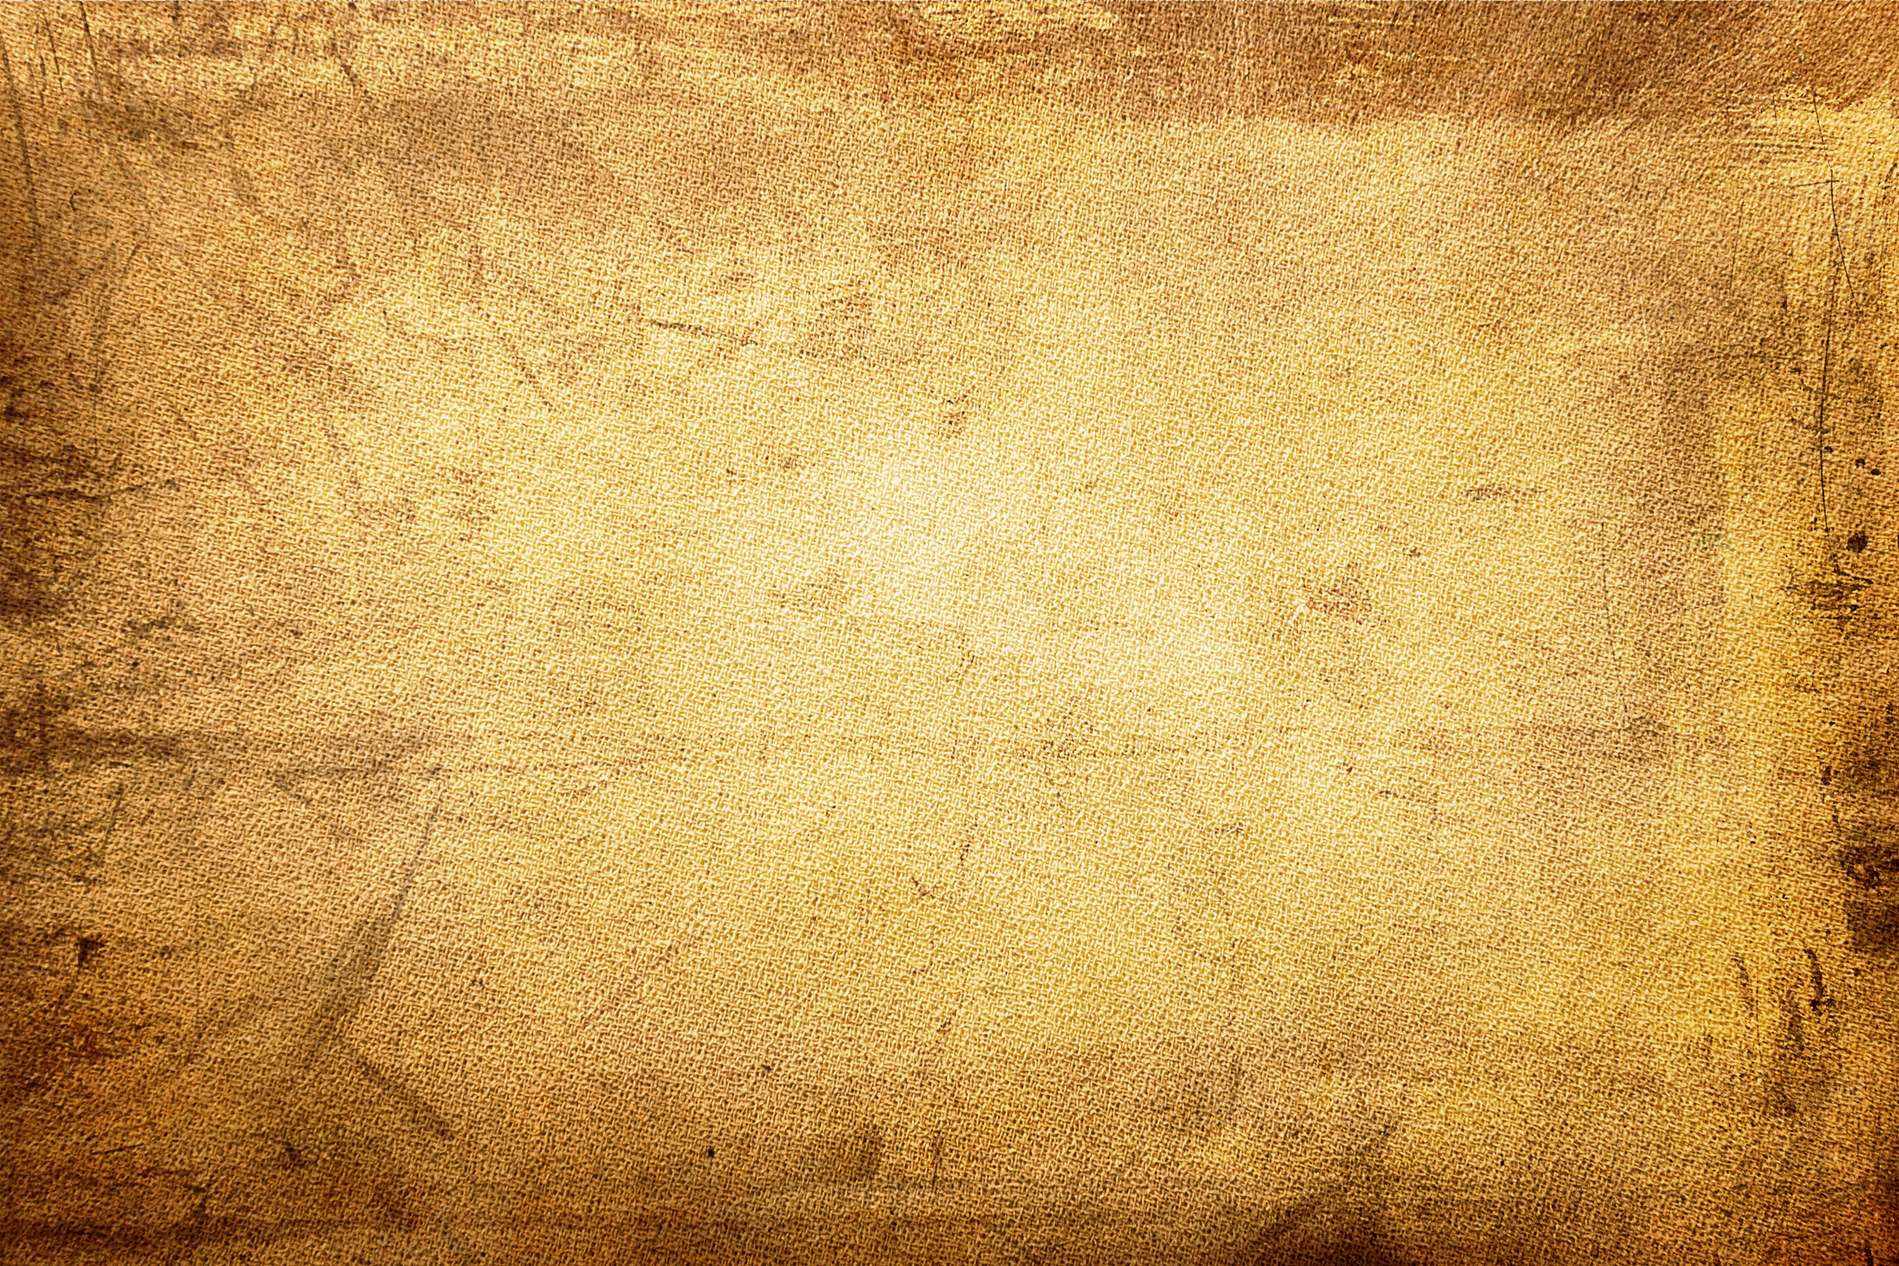 yellow vintage fabric texture background photohdx